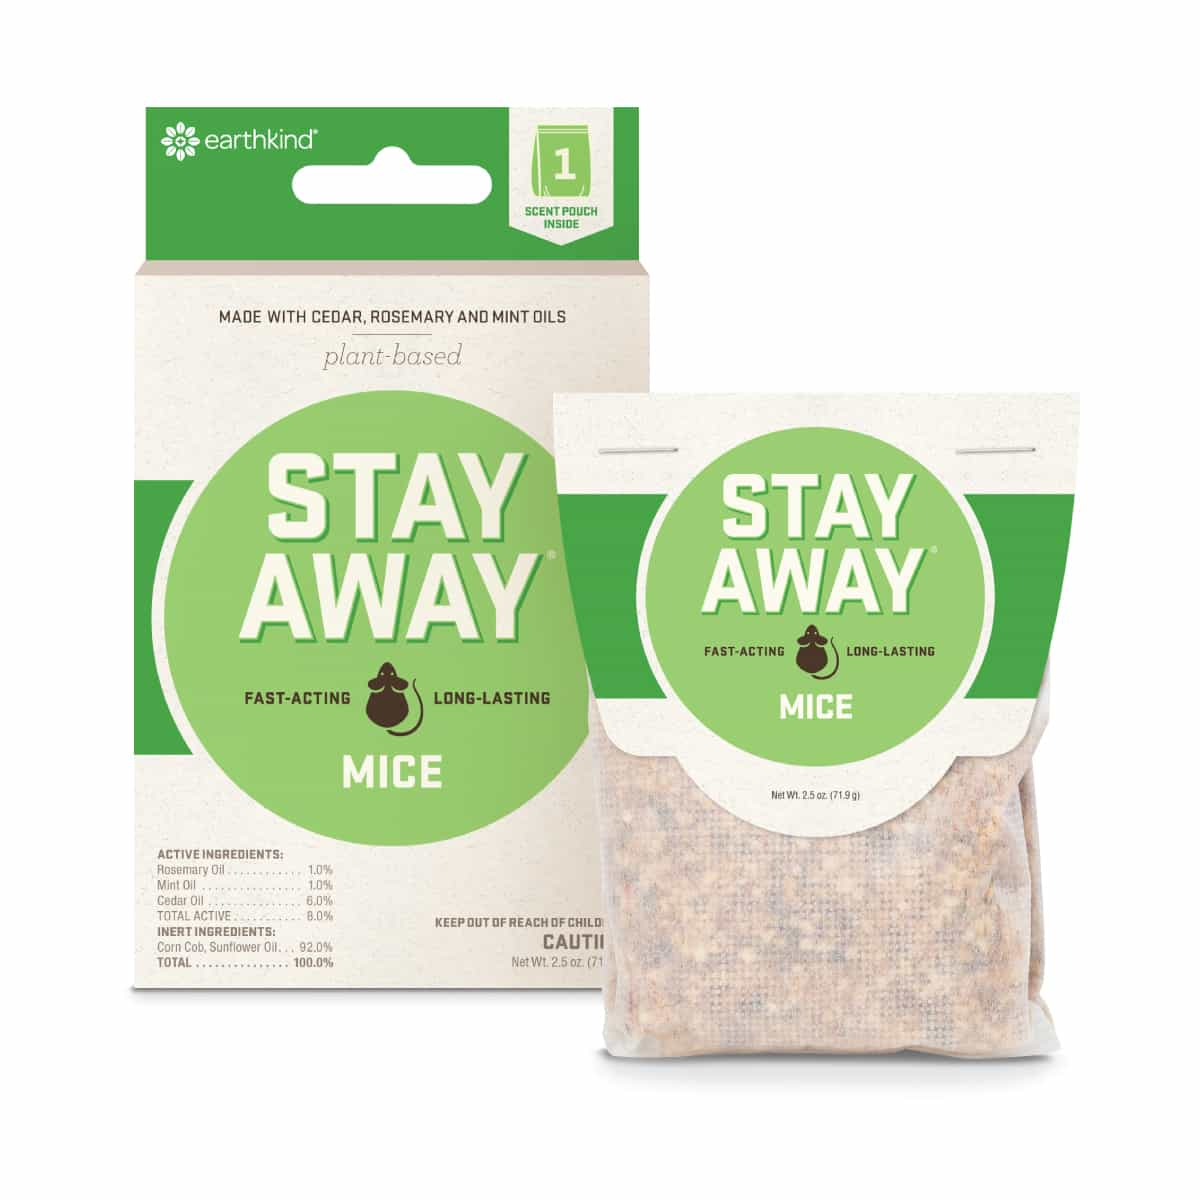 Protect Your Home From Rodents With Stay Away Mice From